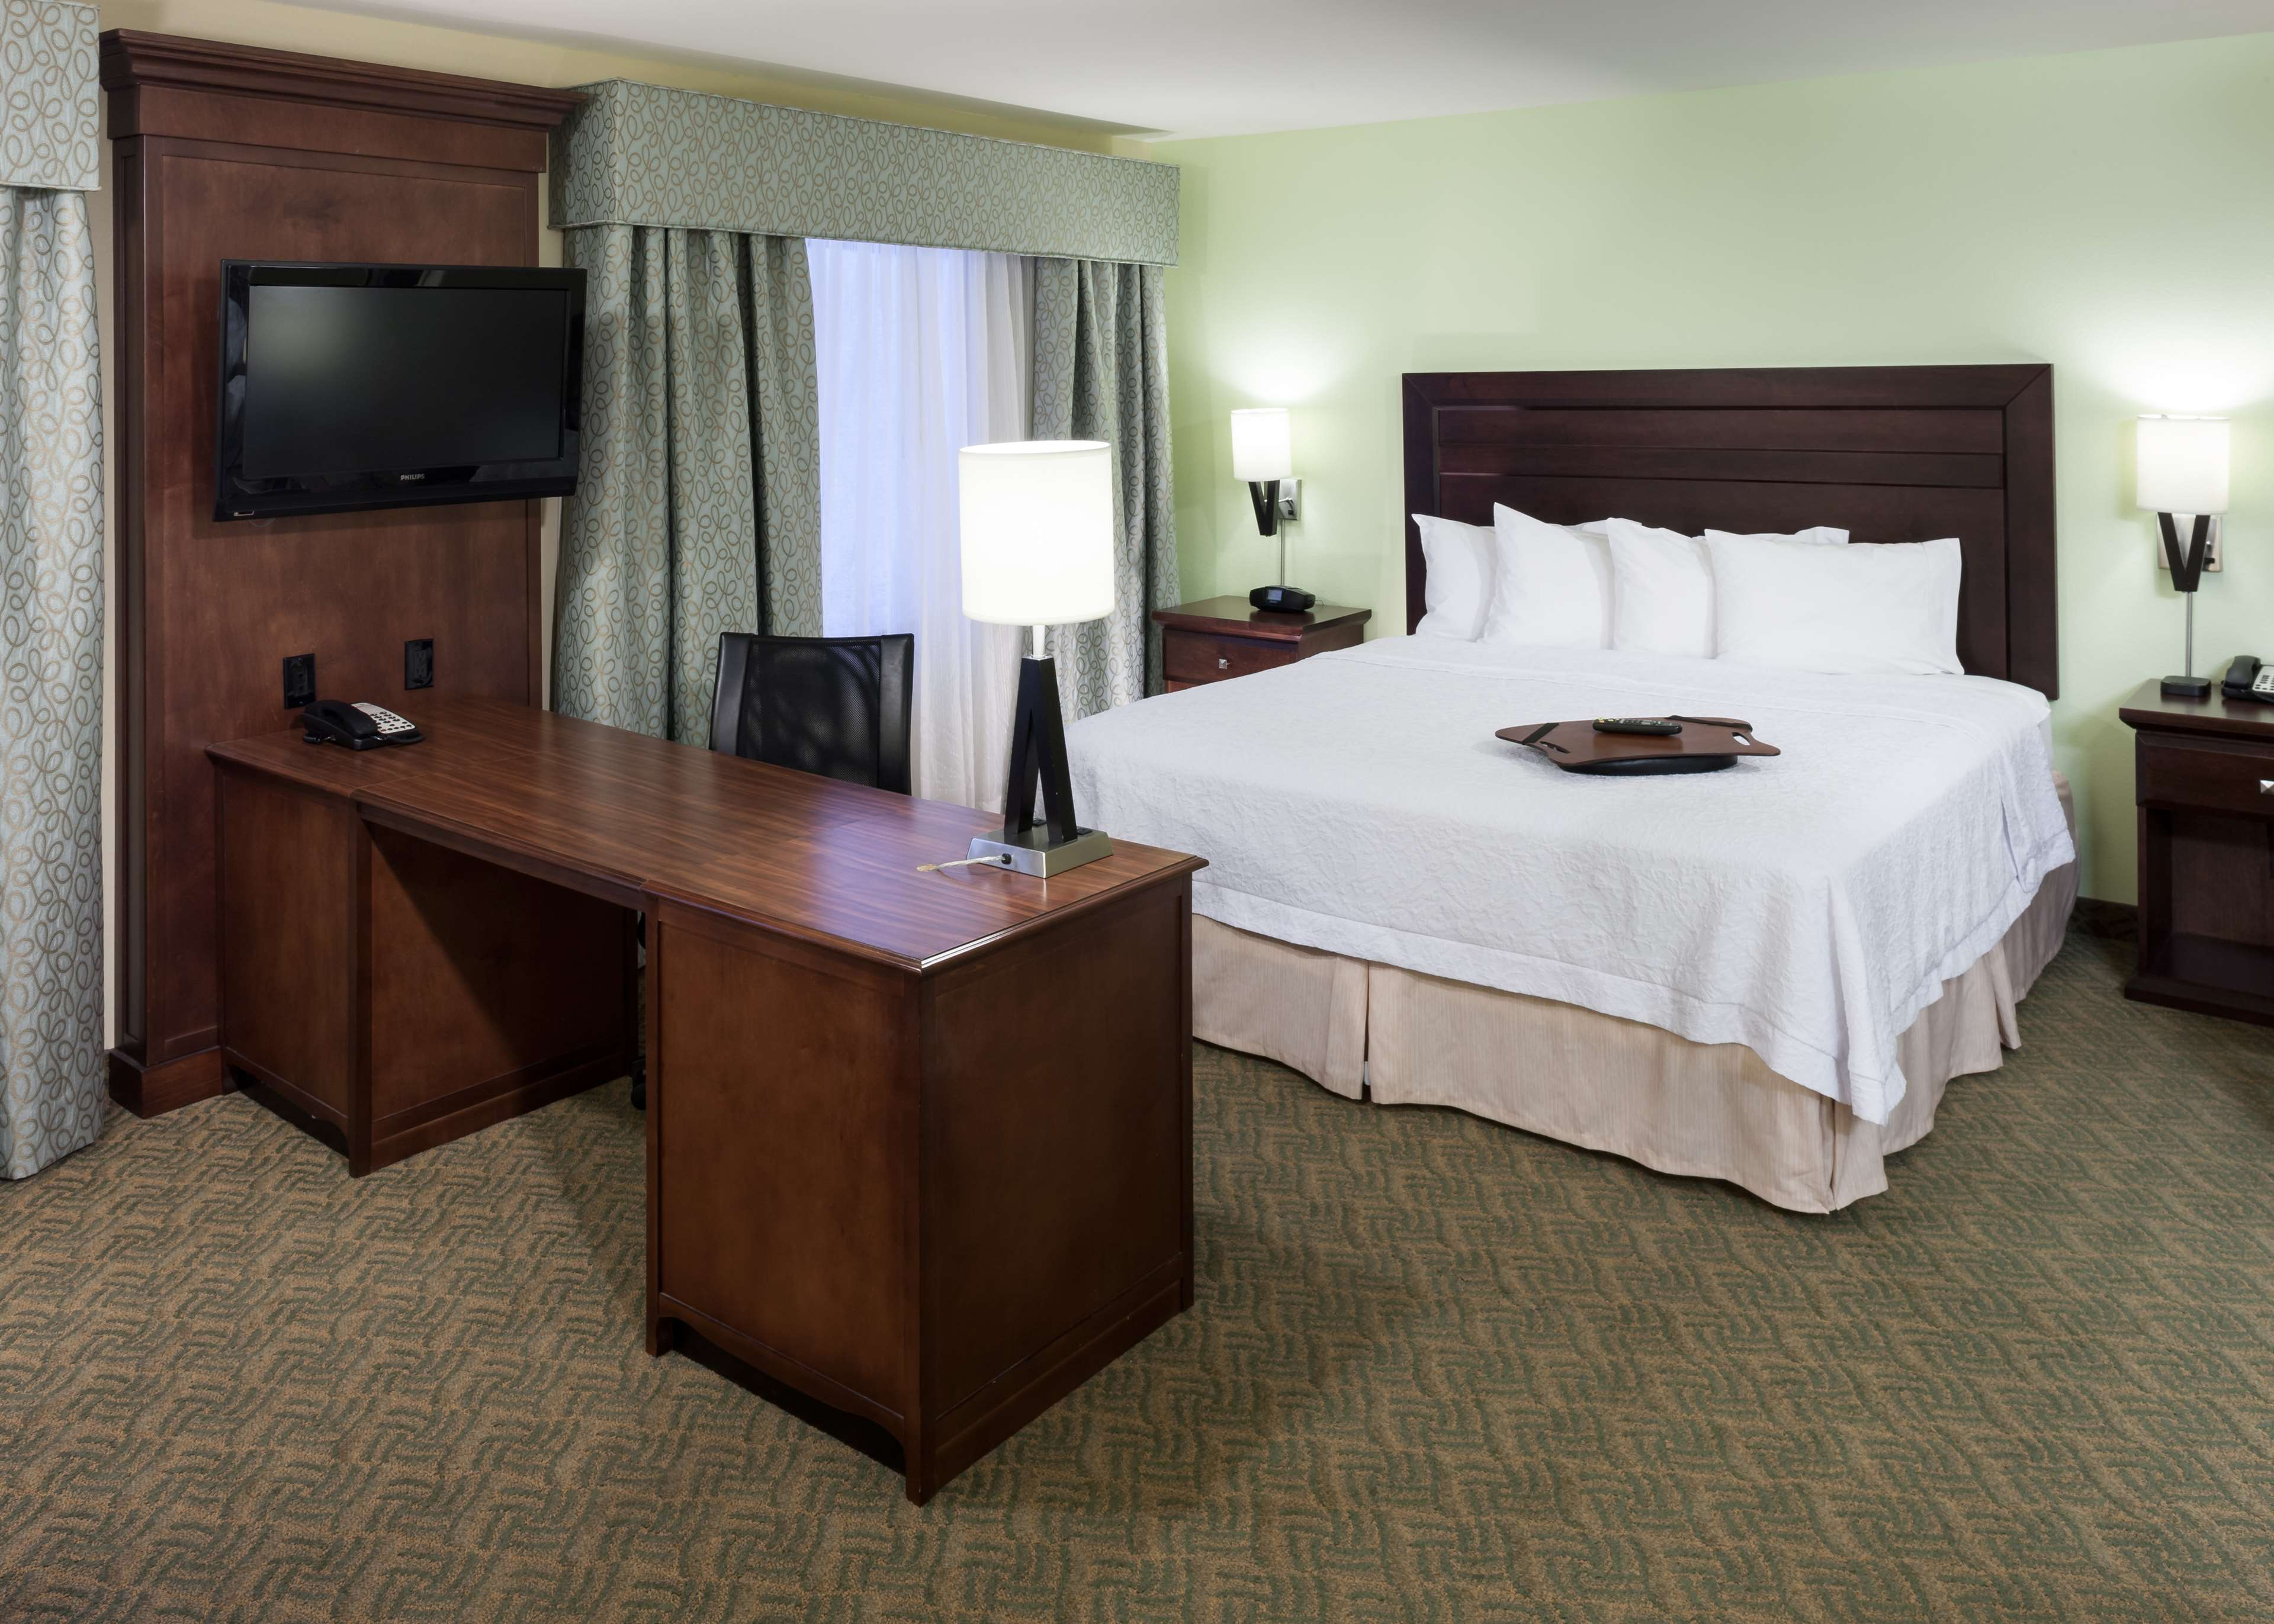 Hampton Inn & Suites Dallas-Arlington-South image 45